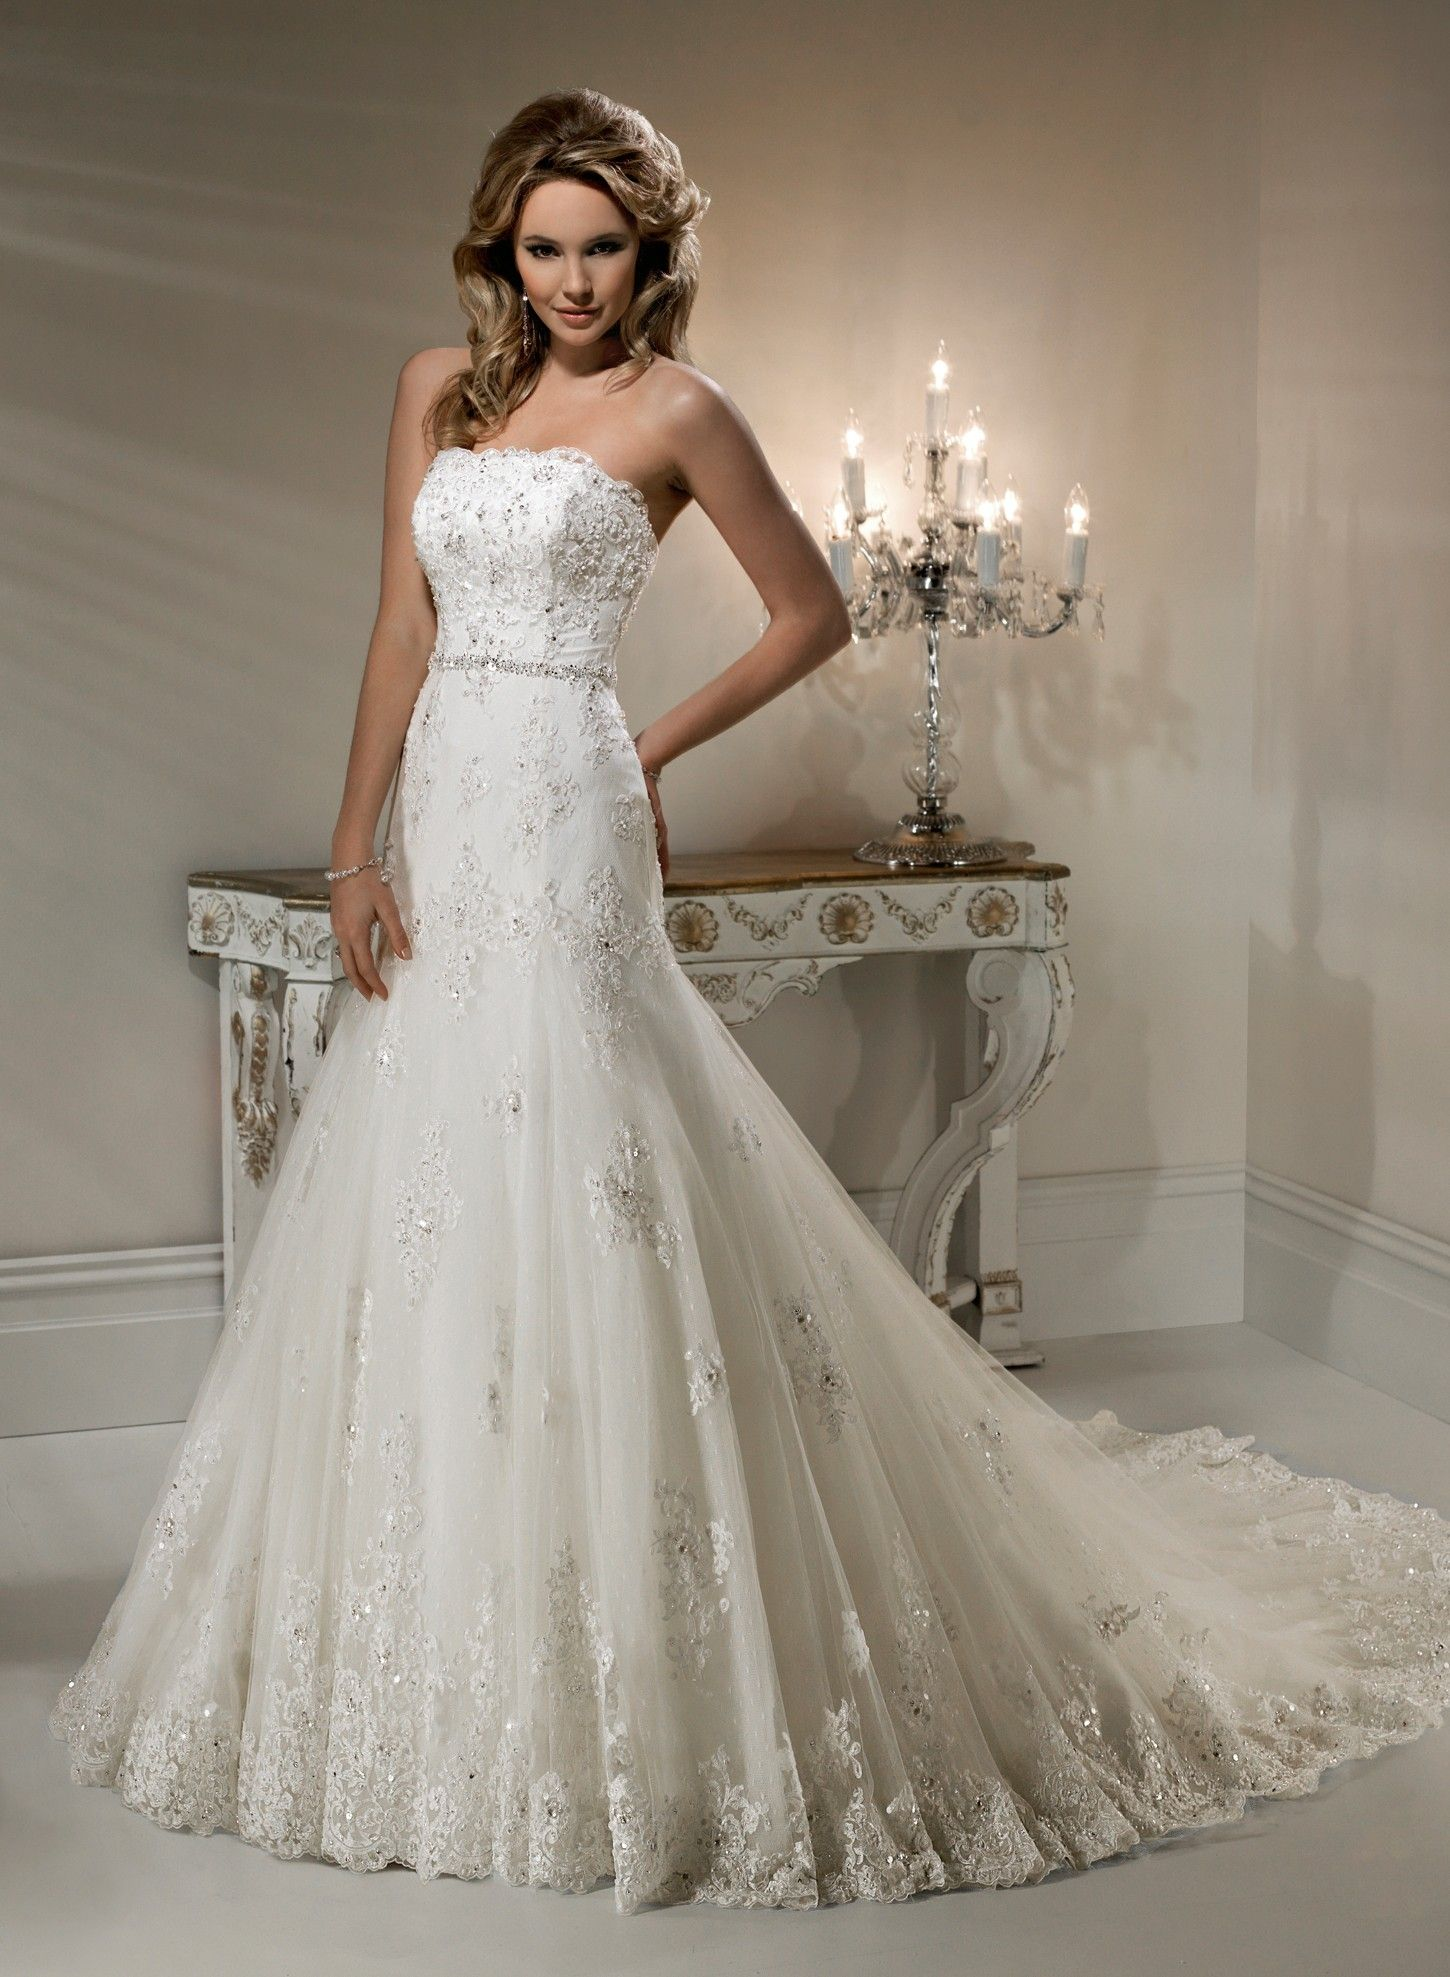 Strapless fitted lace wedding dresses  The Sisi dress is the perfect outfit for a fairytale wedding